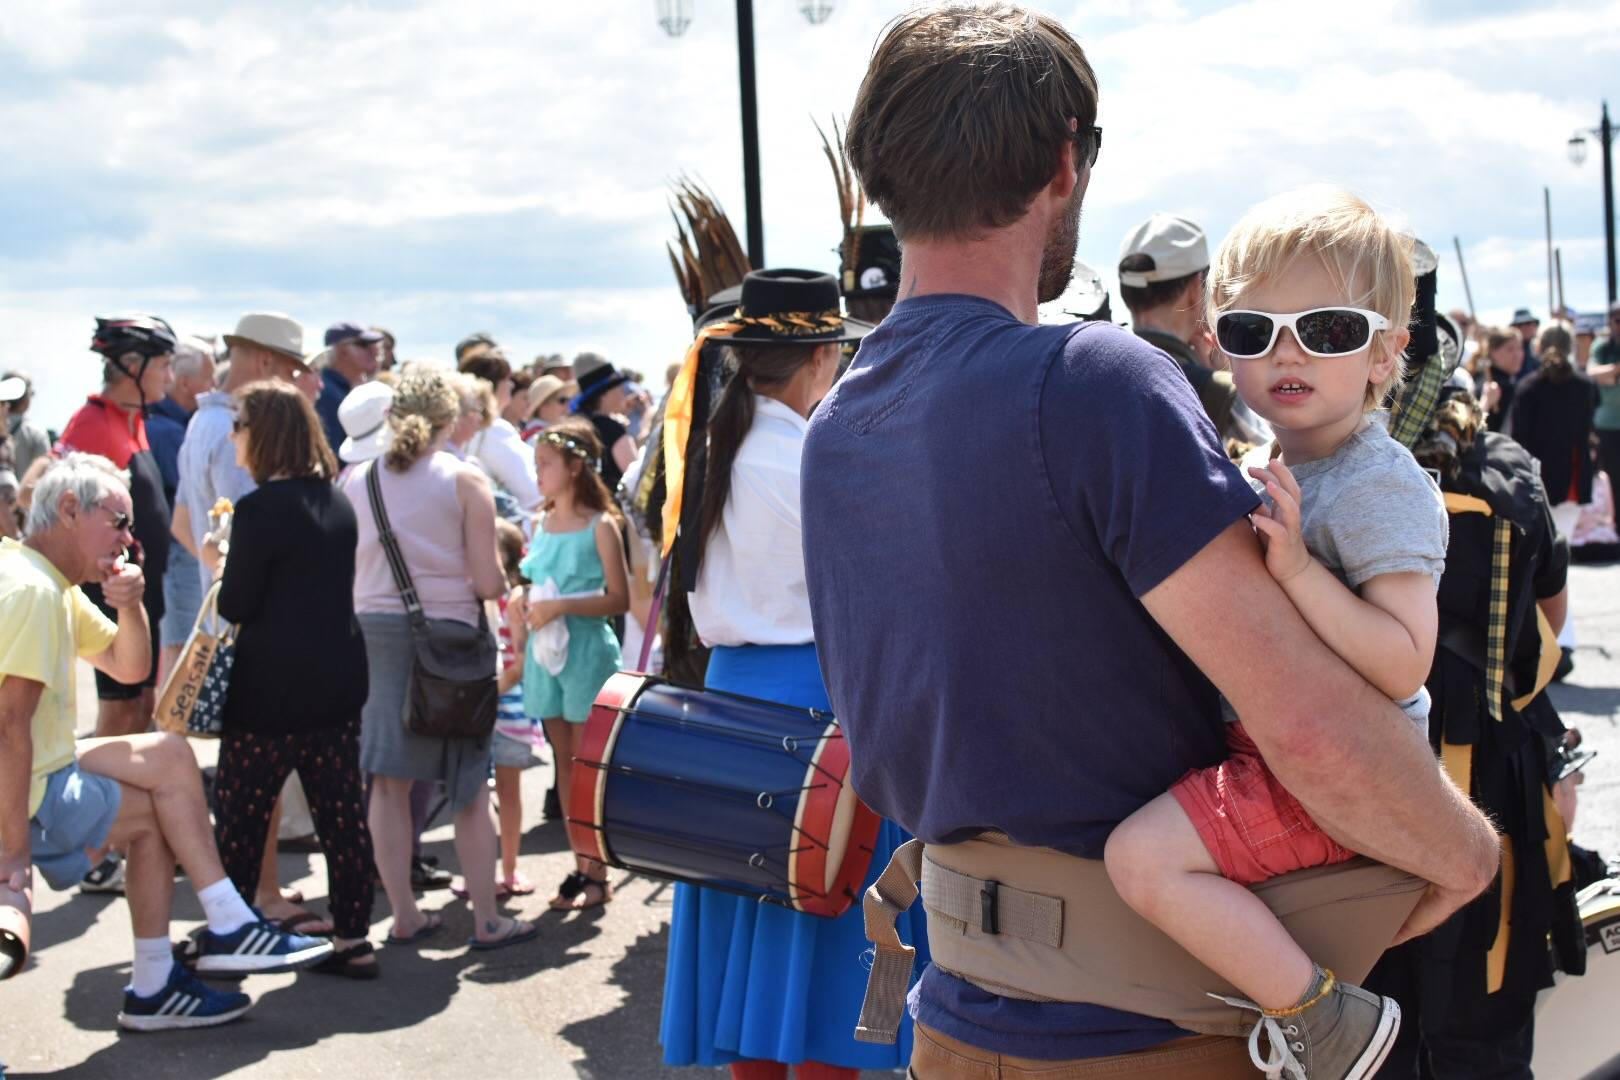 the hippy chic toddler seat was an absolute life saver during our annual folk festival